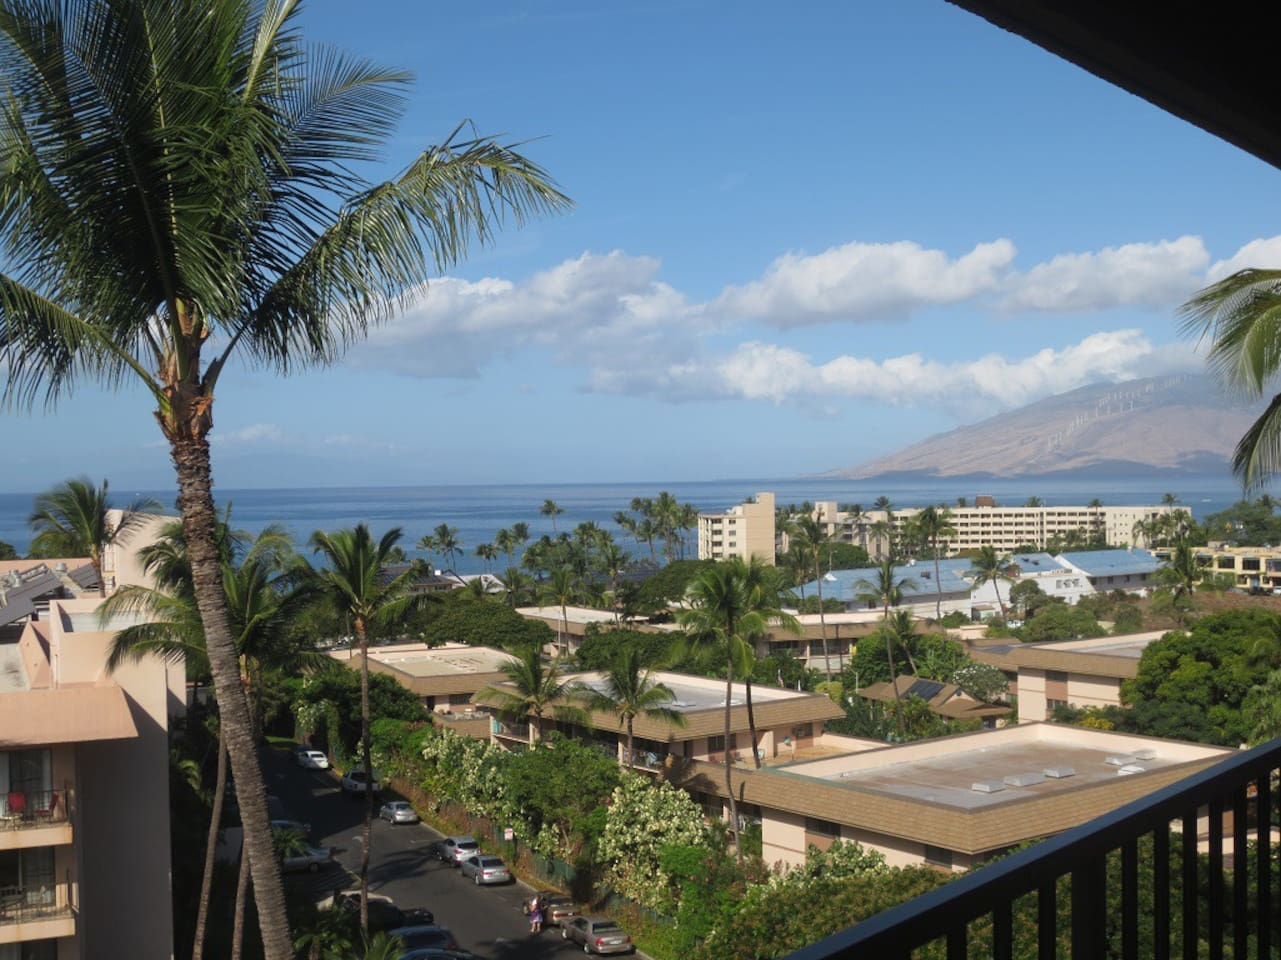 Ocean view from balcony and views of West Maui.